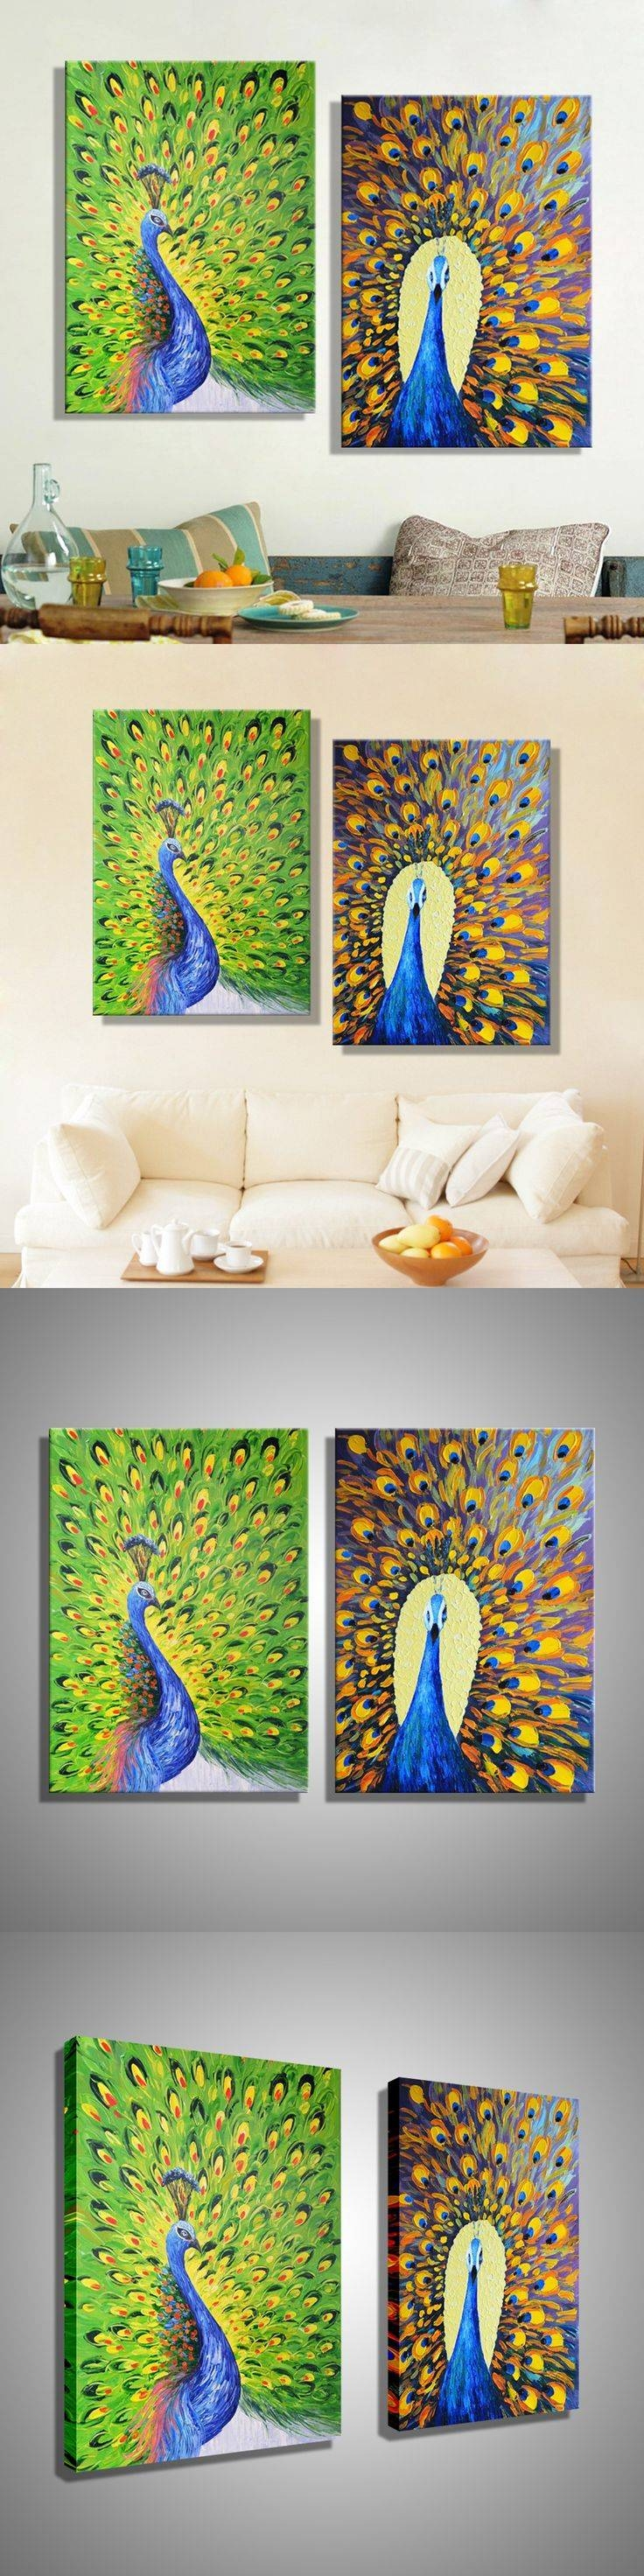 25+ Unique Peacock Wall Art Ideas On Pinterest | Peacock Artwork Intended For 2017 Jeweled Peacock Wall Art (View 2 of 20)